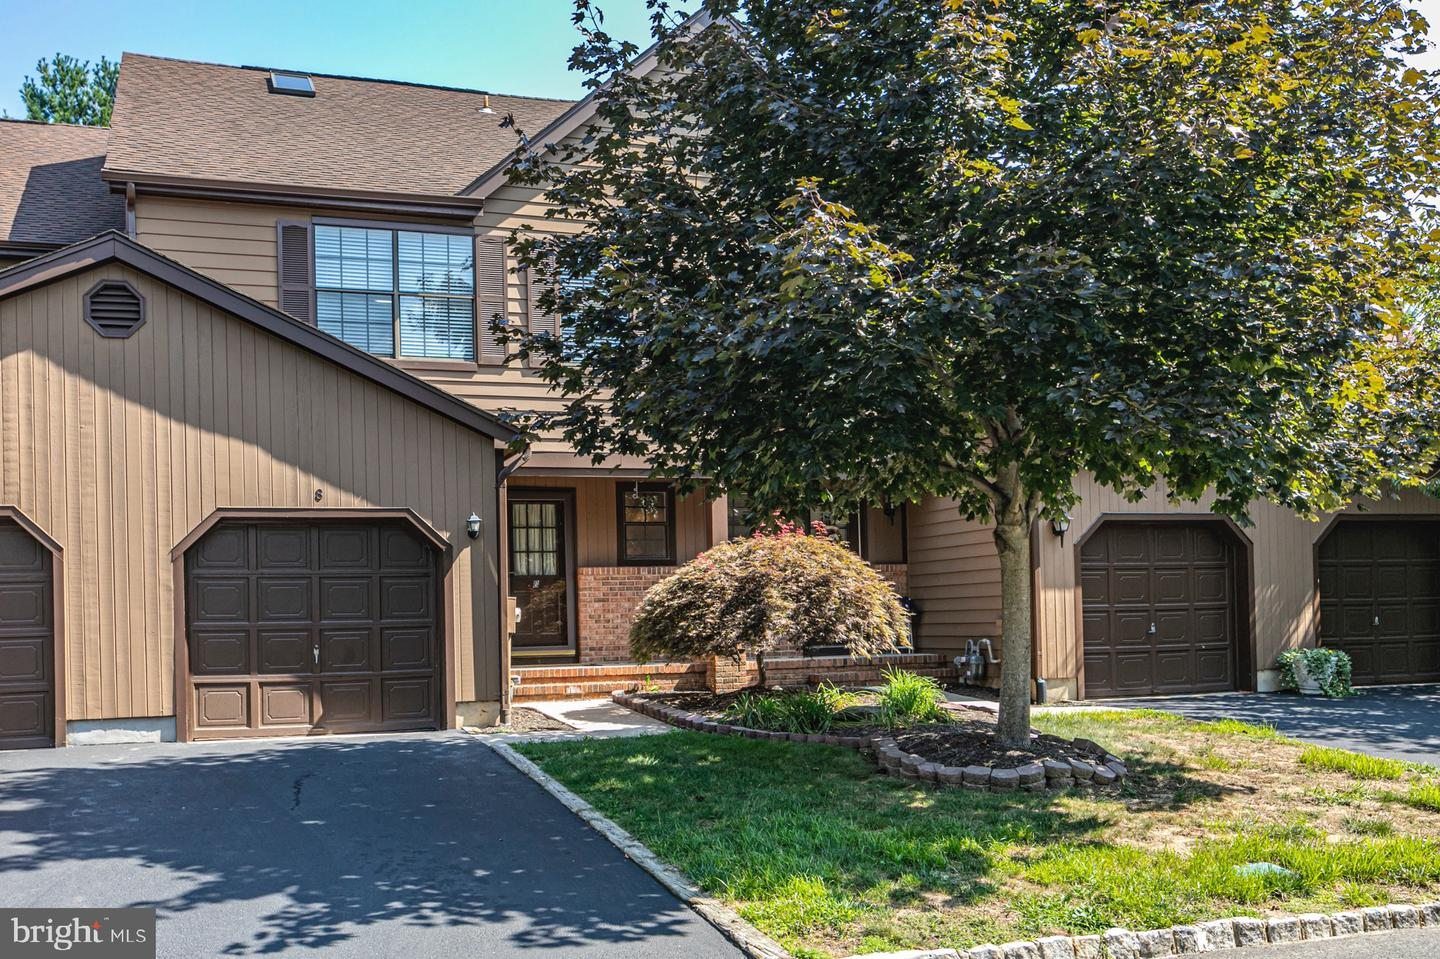 8 CLIVEDEN CT, LAWRENCE TOWNSHIP, NJ 08648